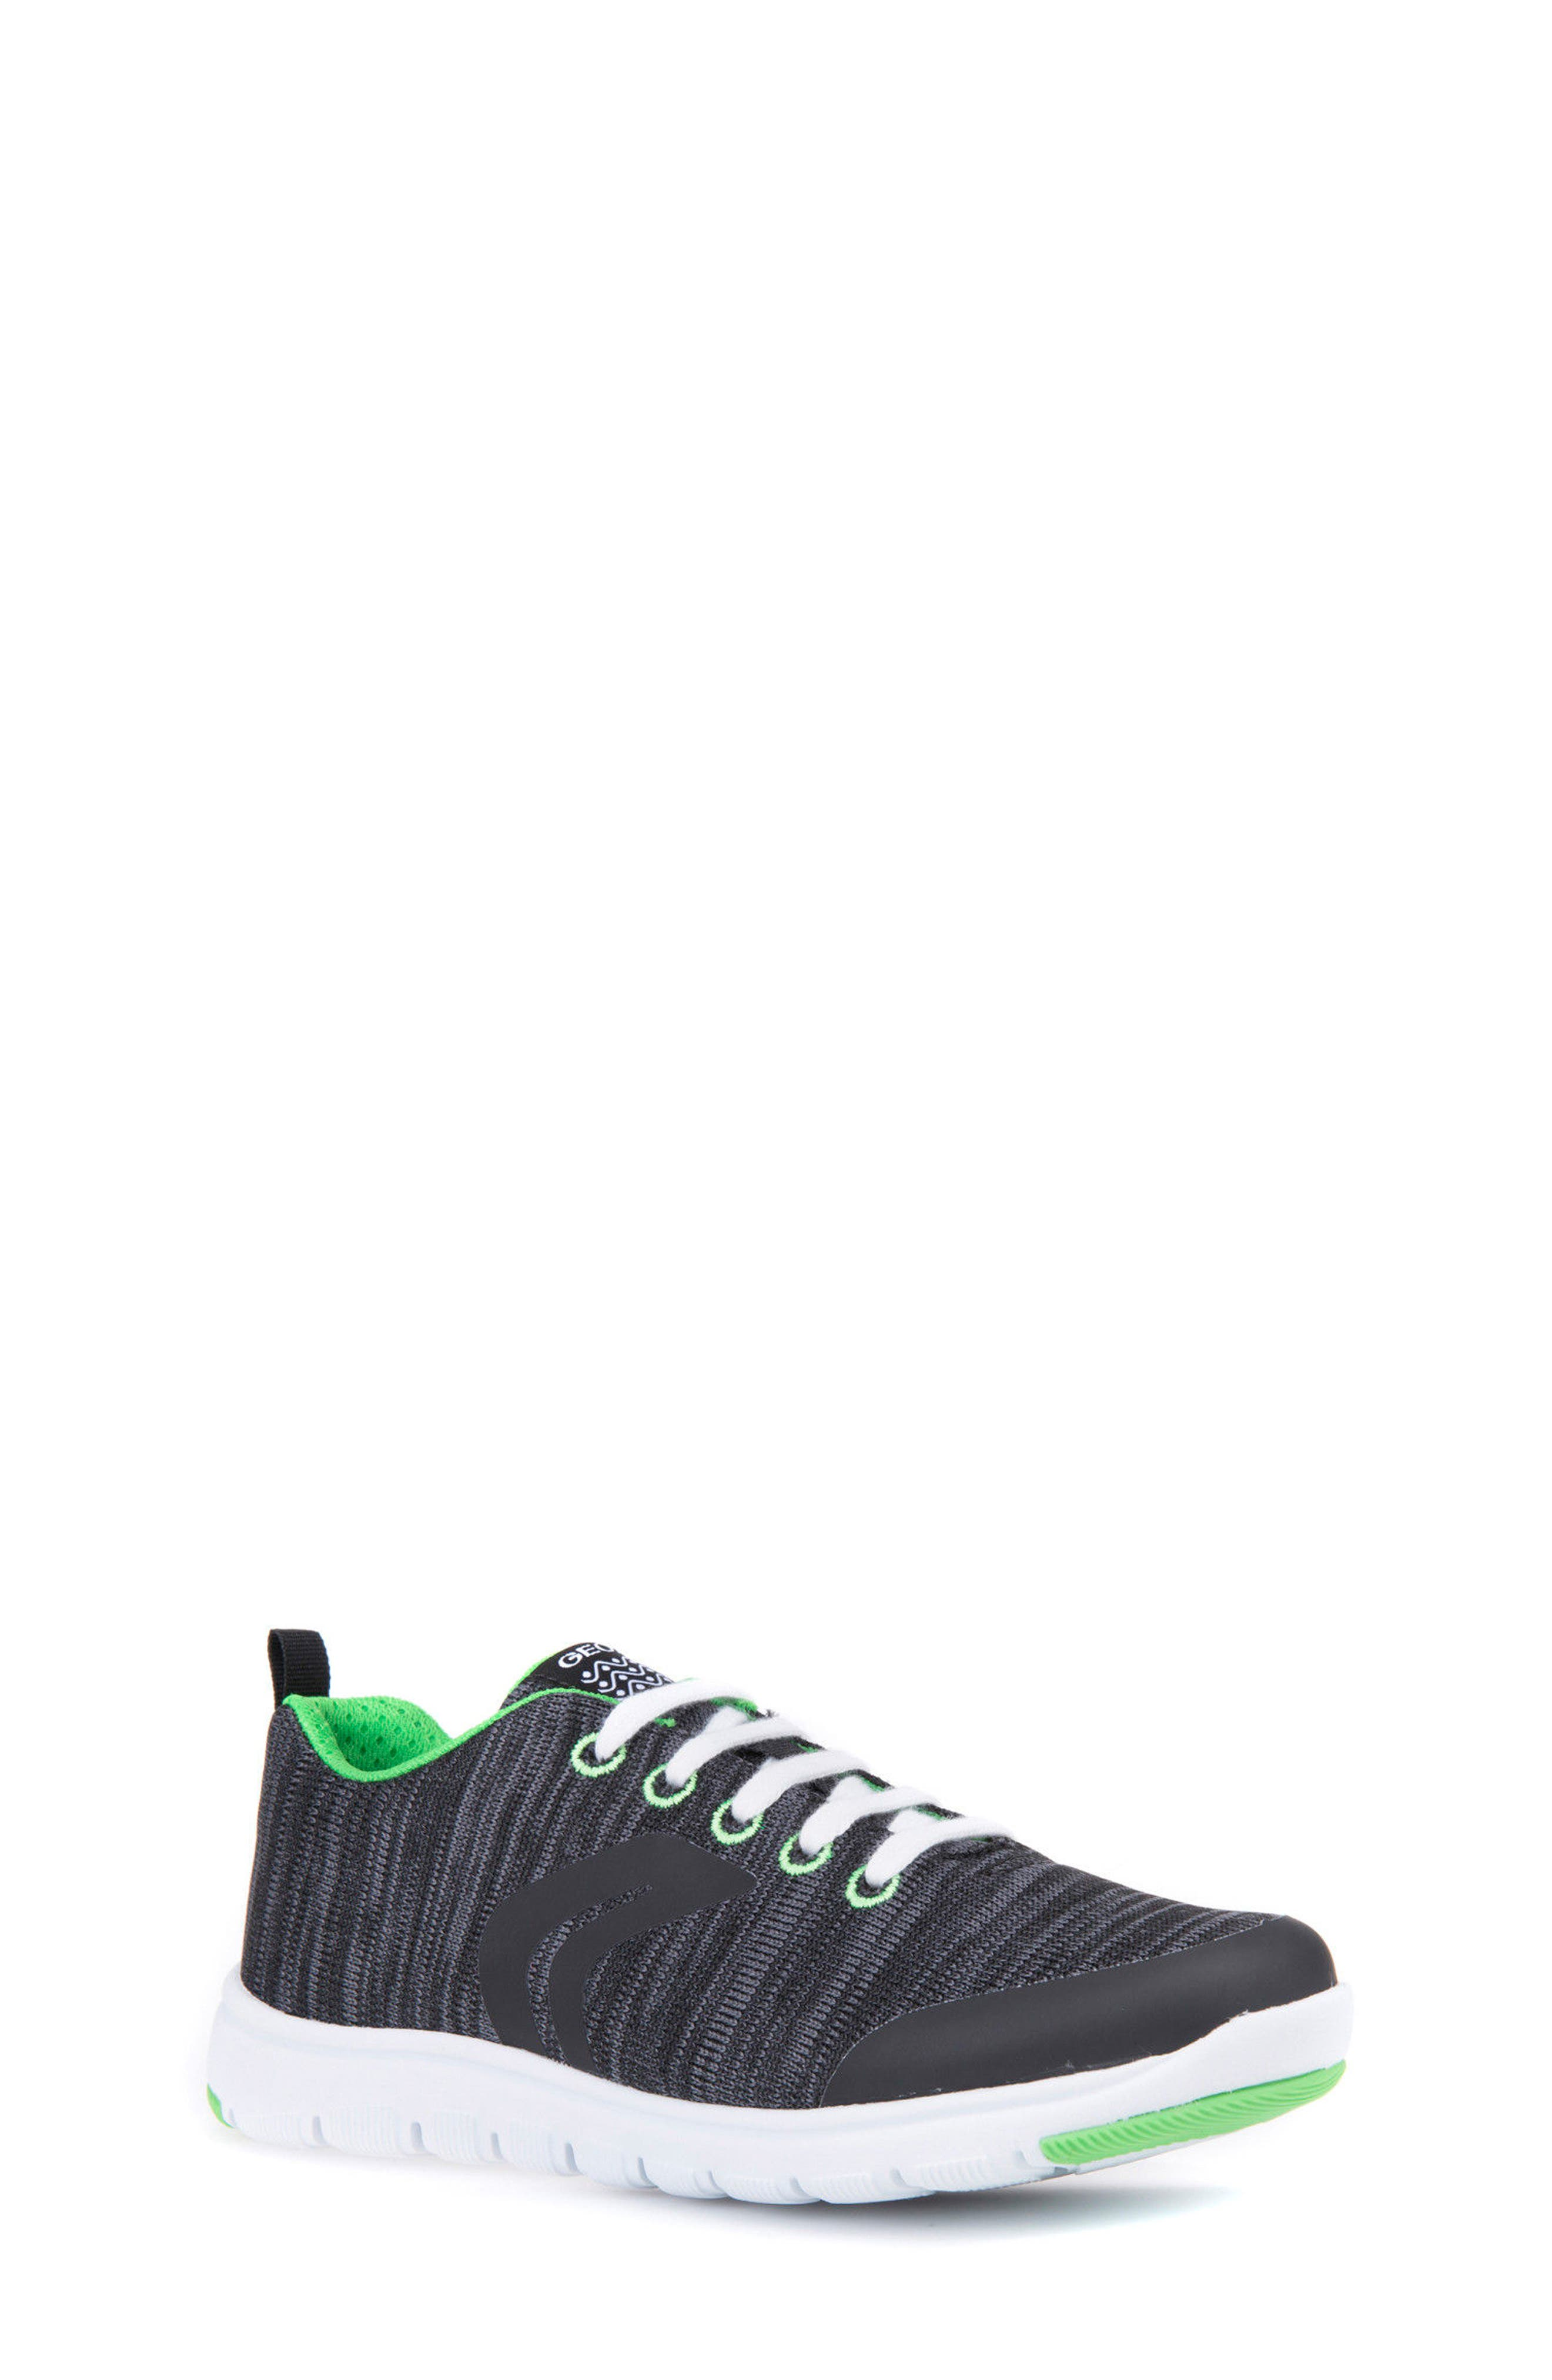 Geox Xunday Performance Knit Low Top Sneaker (Toddler, Little Kid & Big Kid)